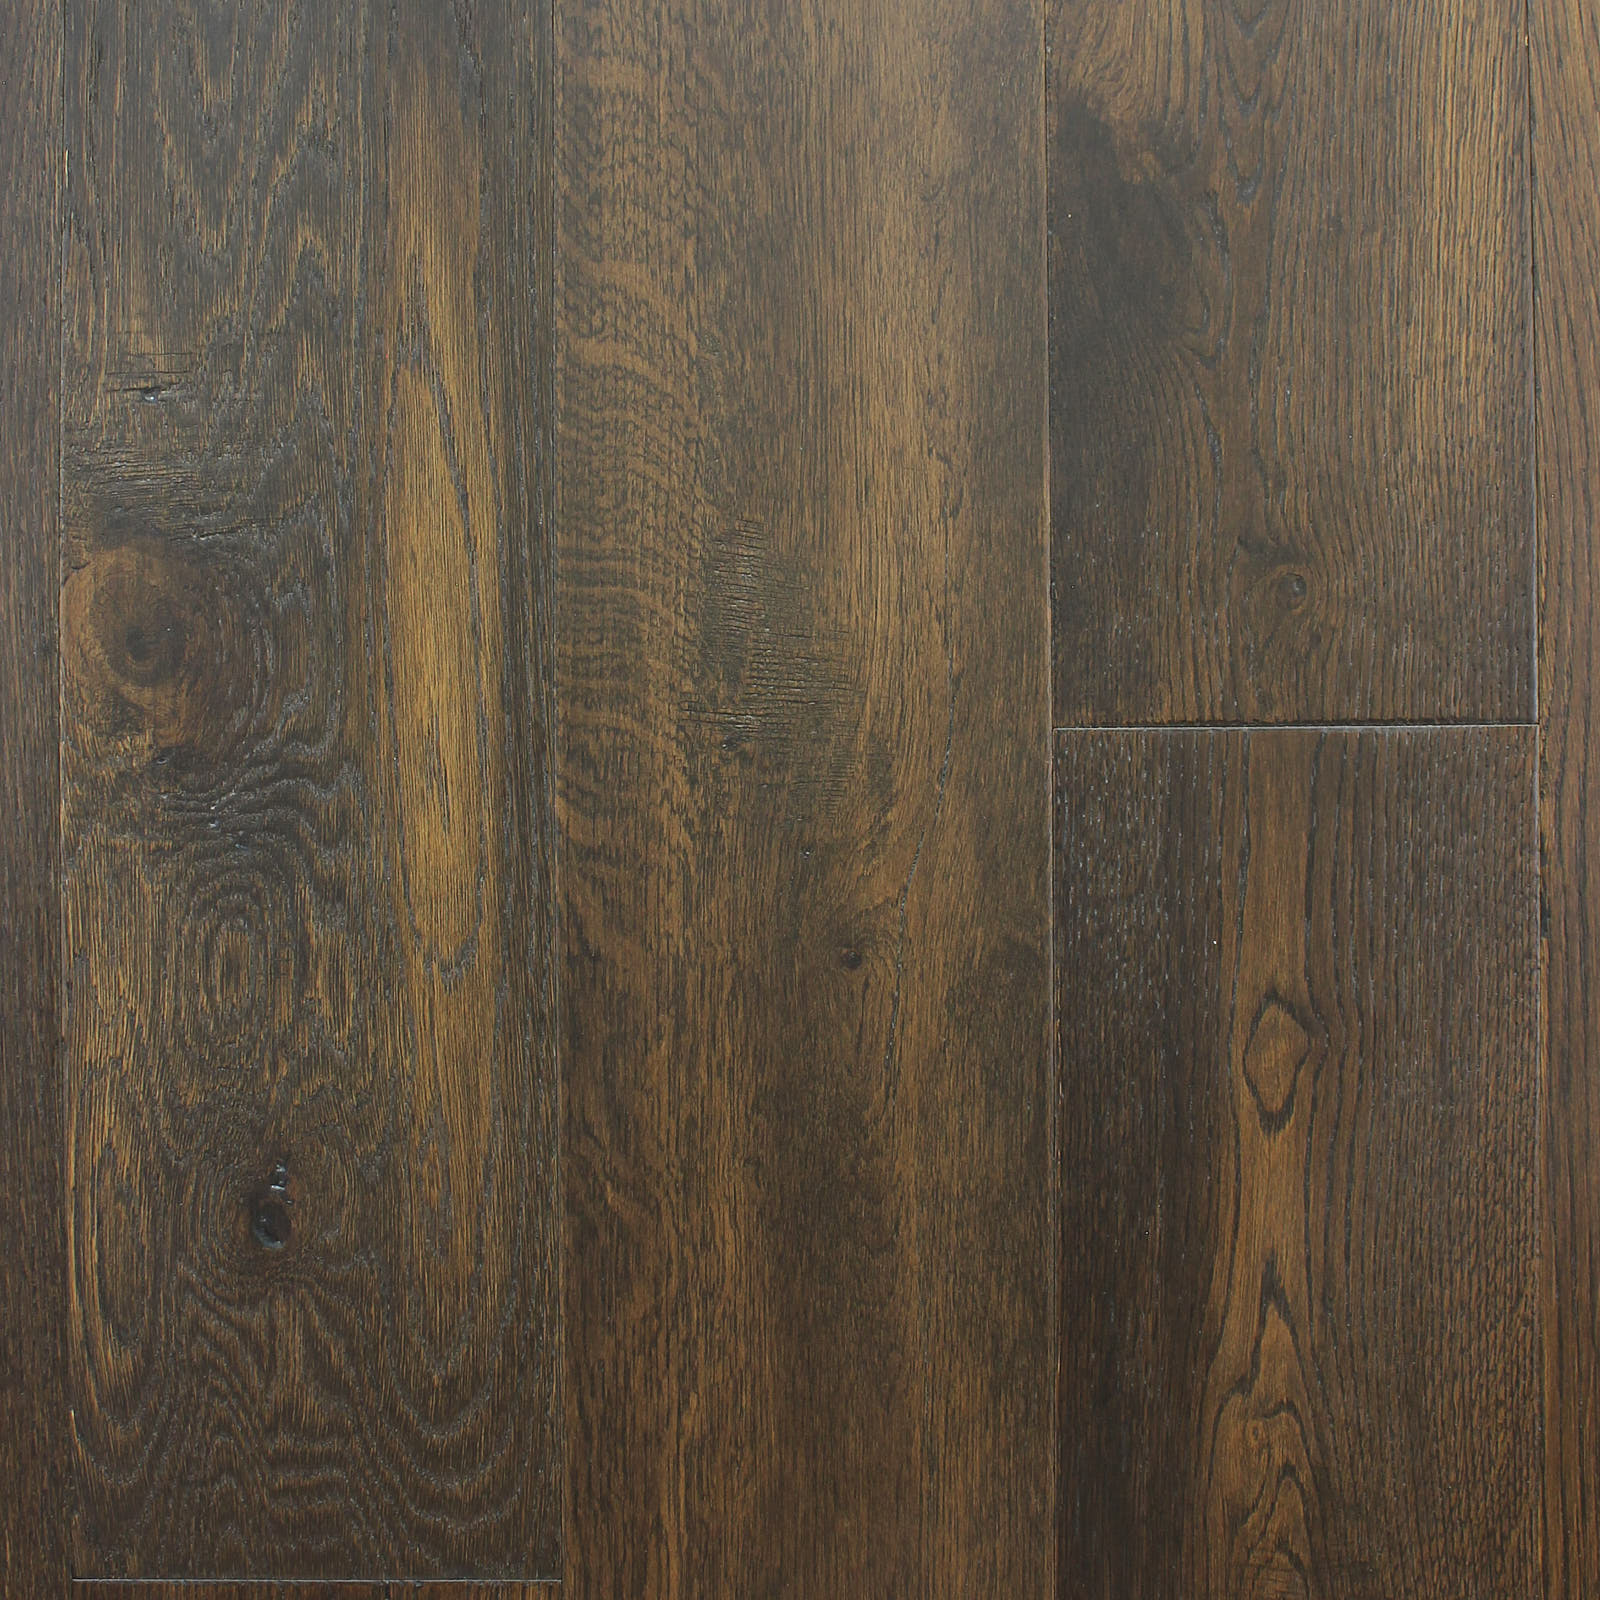 Mountain Lodge Bearskin Engineered Hardwood Flooring